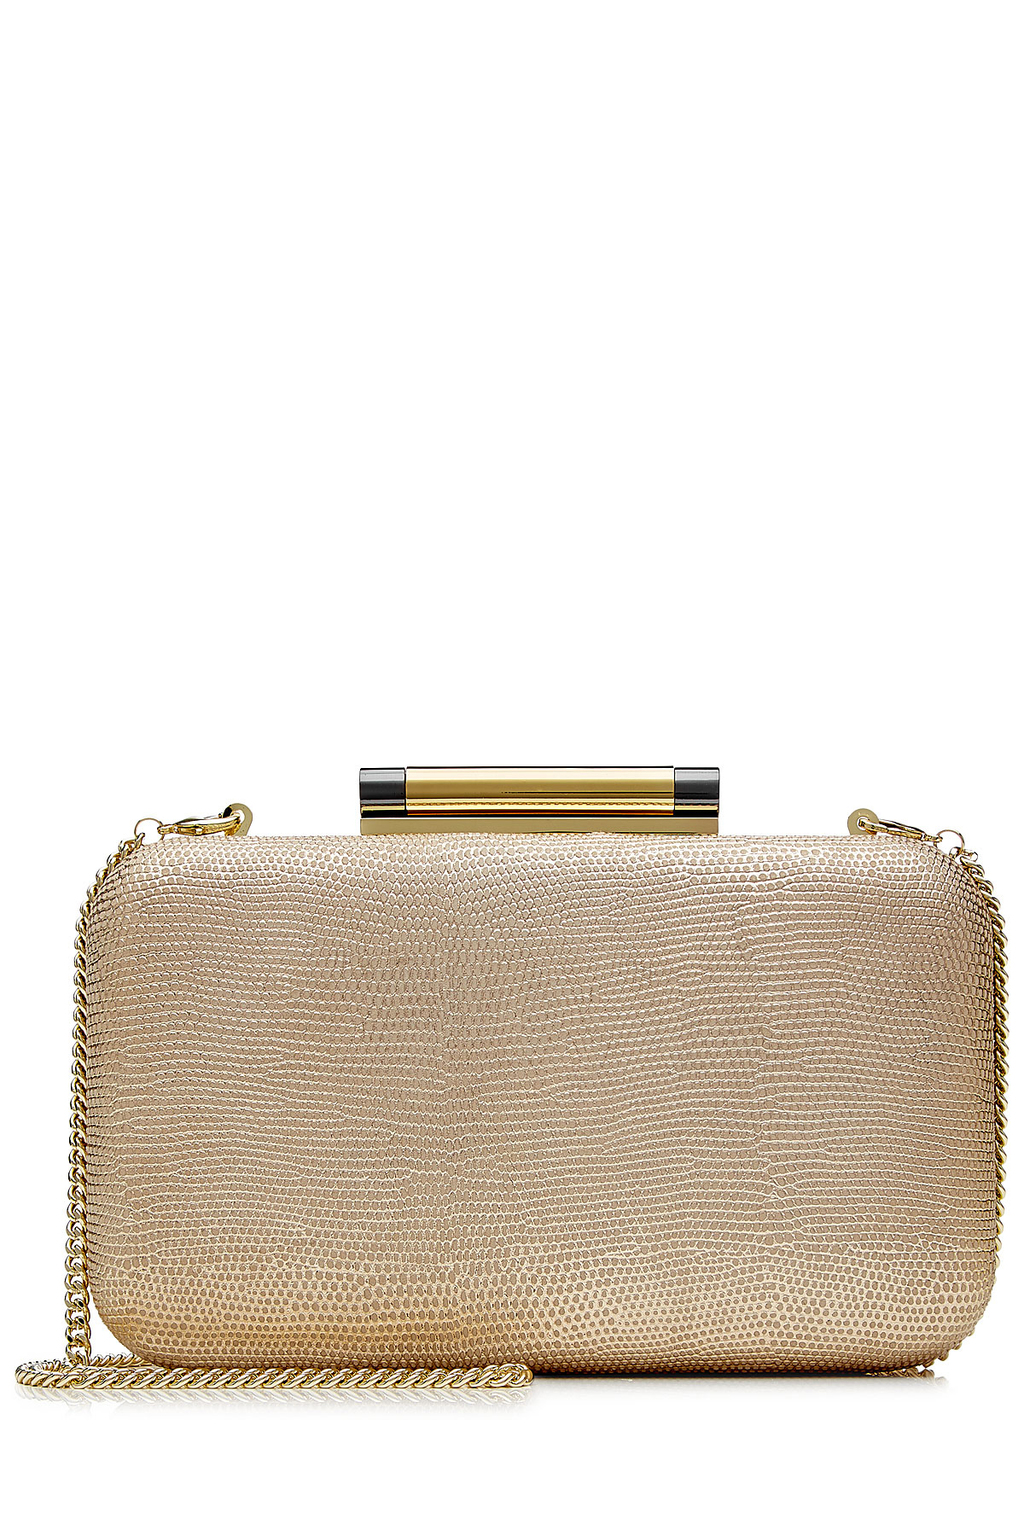 Shimmer Lizard Embossed Leather Slim Tonda Minaudiere Gold - predominant colour: gold; occasions: evening, occasion; type of pattern: standard; style: clutch; length: hand carry; size: small; material: leather; pattern: plain; finish: metallic; season: s/s 2016; wardrobe: event